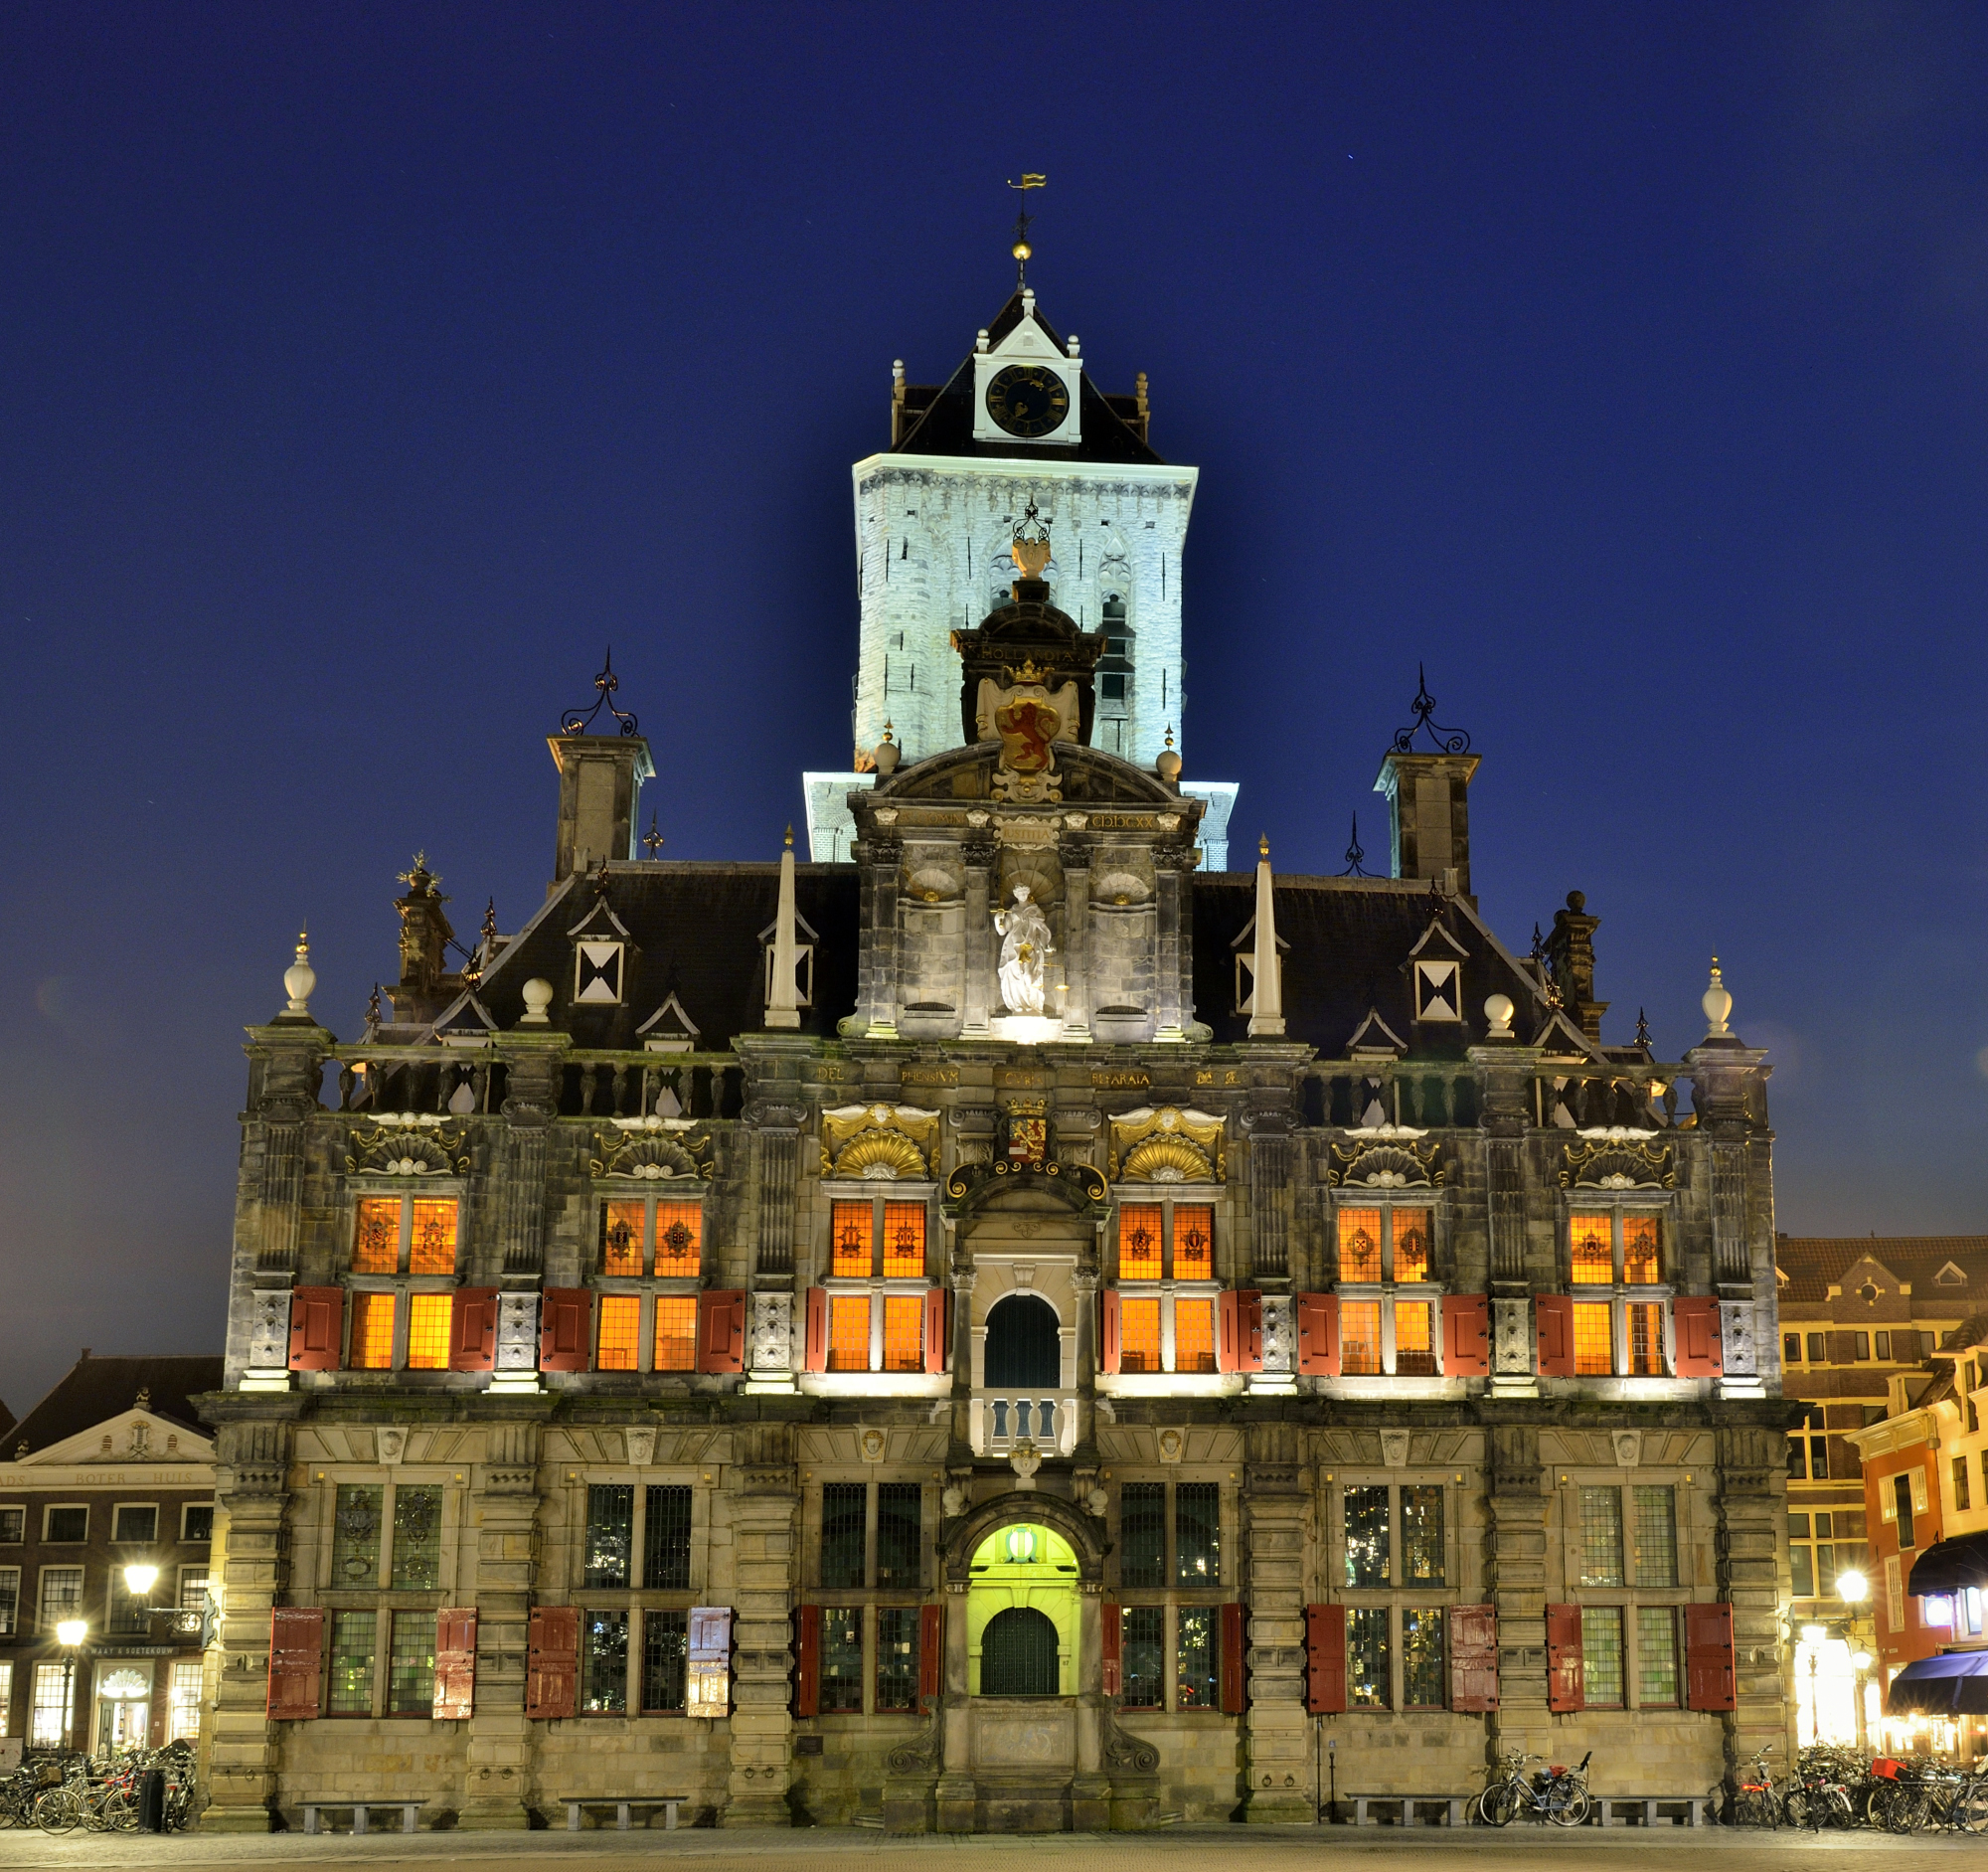 City Hall in Delft, Netherlands